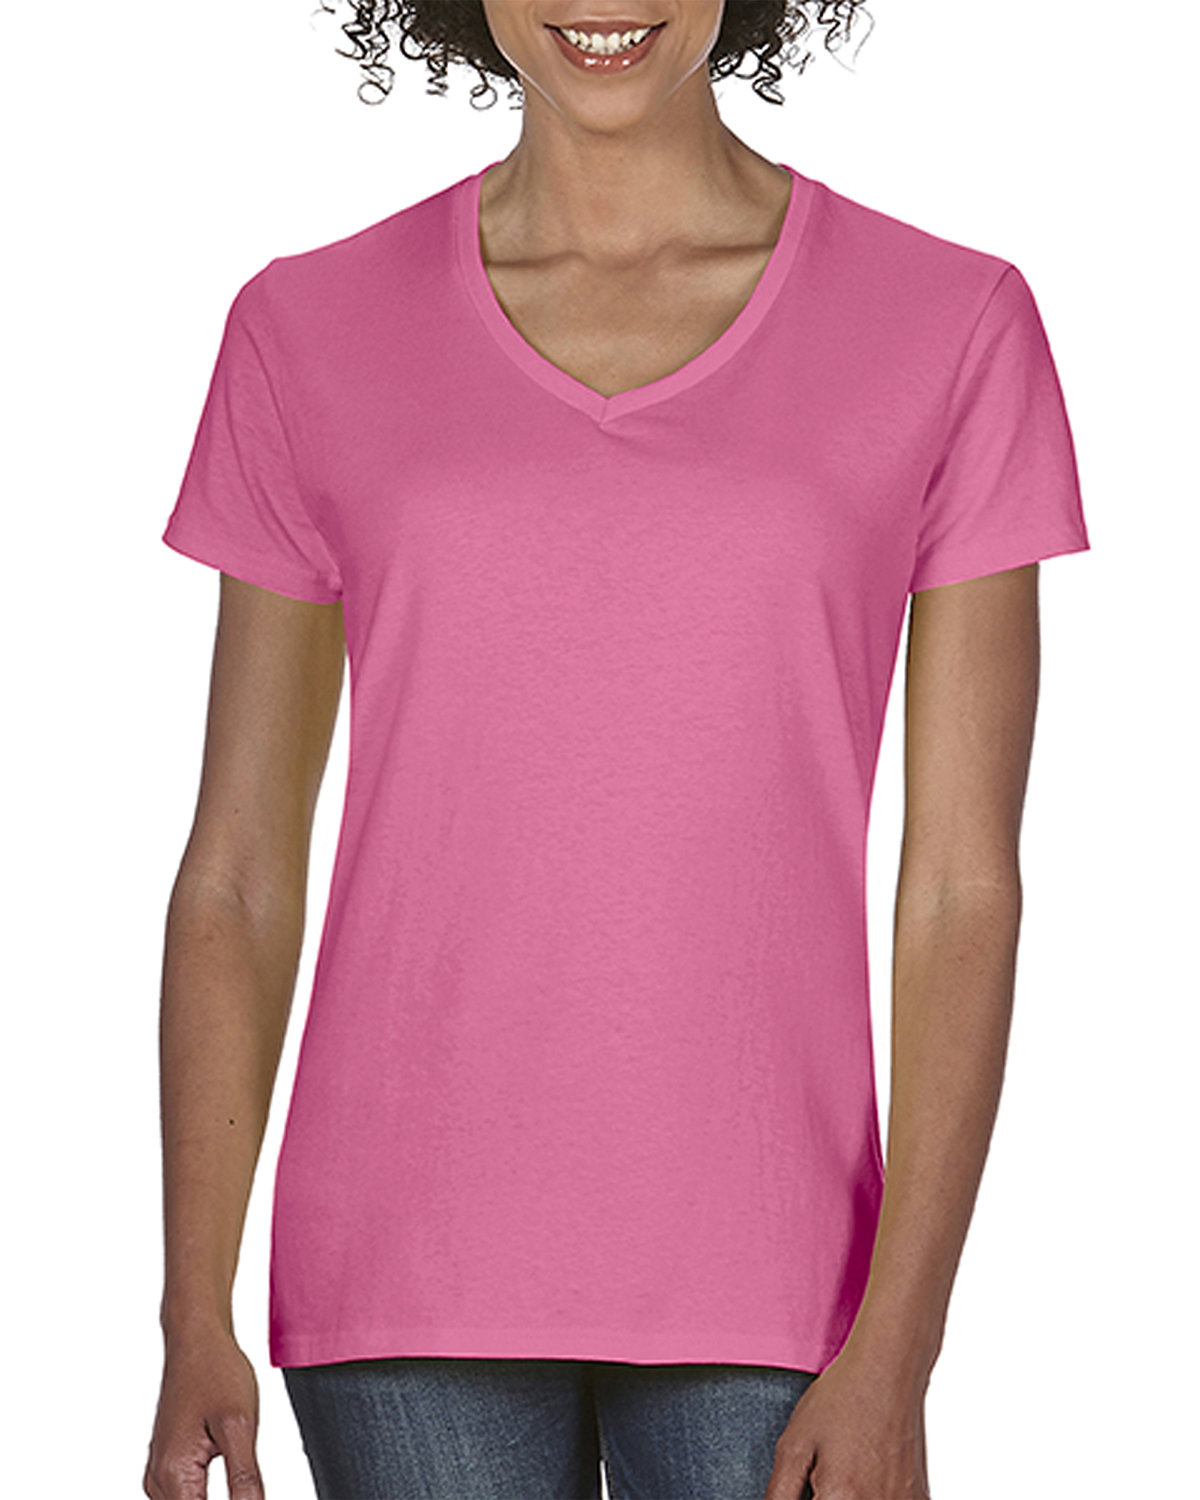 Comfort Colors Ladies' Midweight V-Neck T-Shirt CRUNCHBERRY